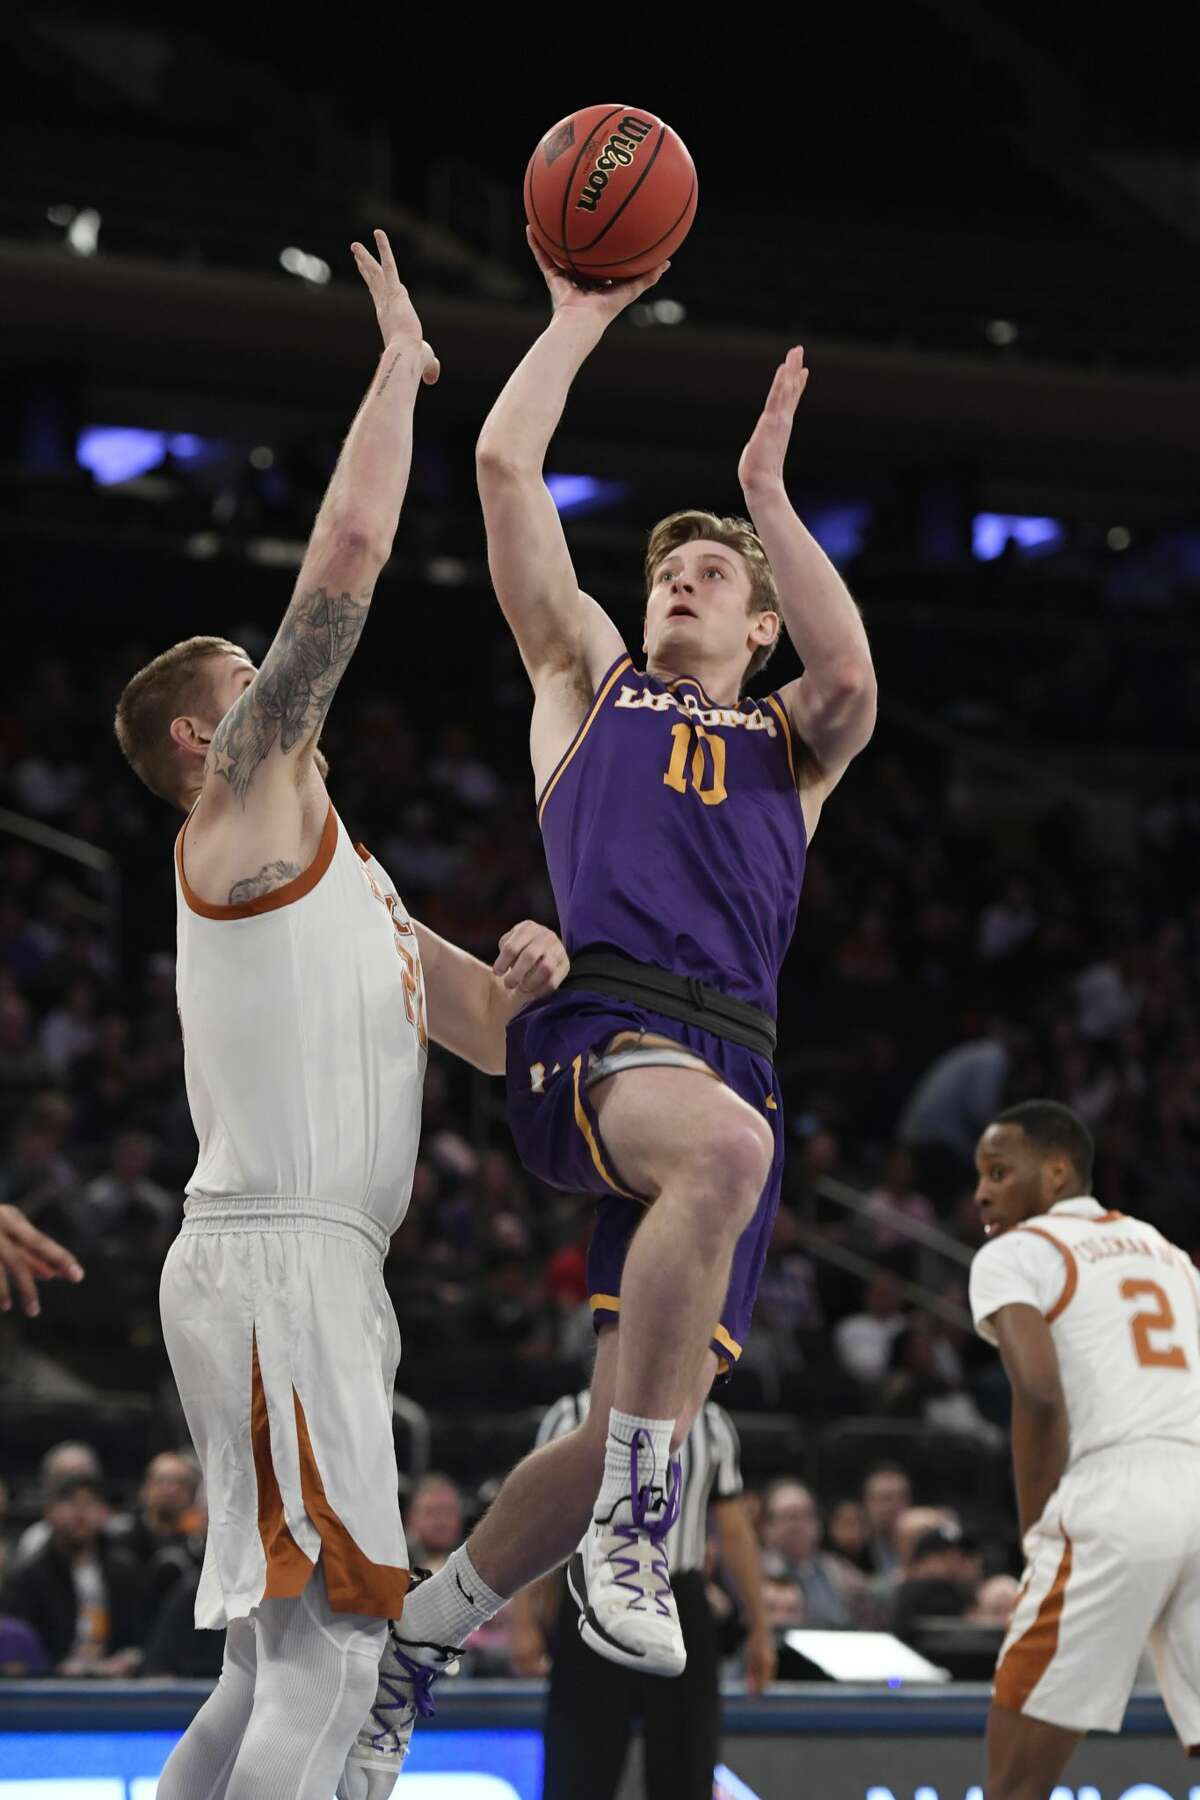 NEW YORK, NEW YORK - APRIL 04: Jake Wolfe #10 of the Lipscomb Bisons shoots the ball during the second half of the game against the Texas Longhorns at Madison Square Garden on April 04, 2019 in New York City. (Photo by Sarah Stier/Getty Images)